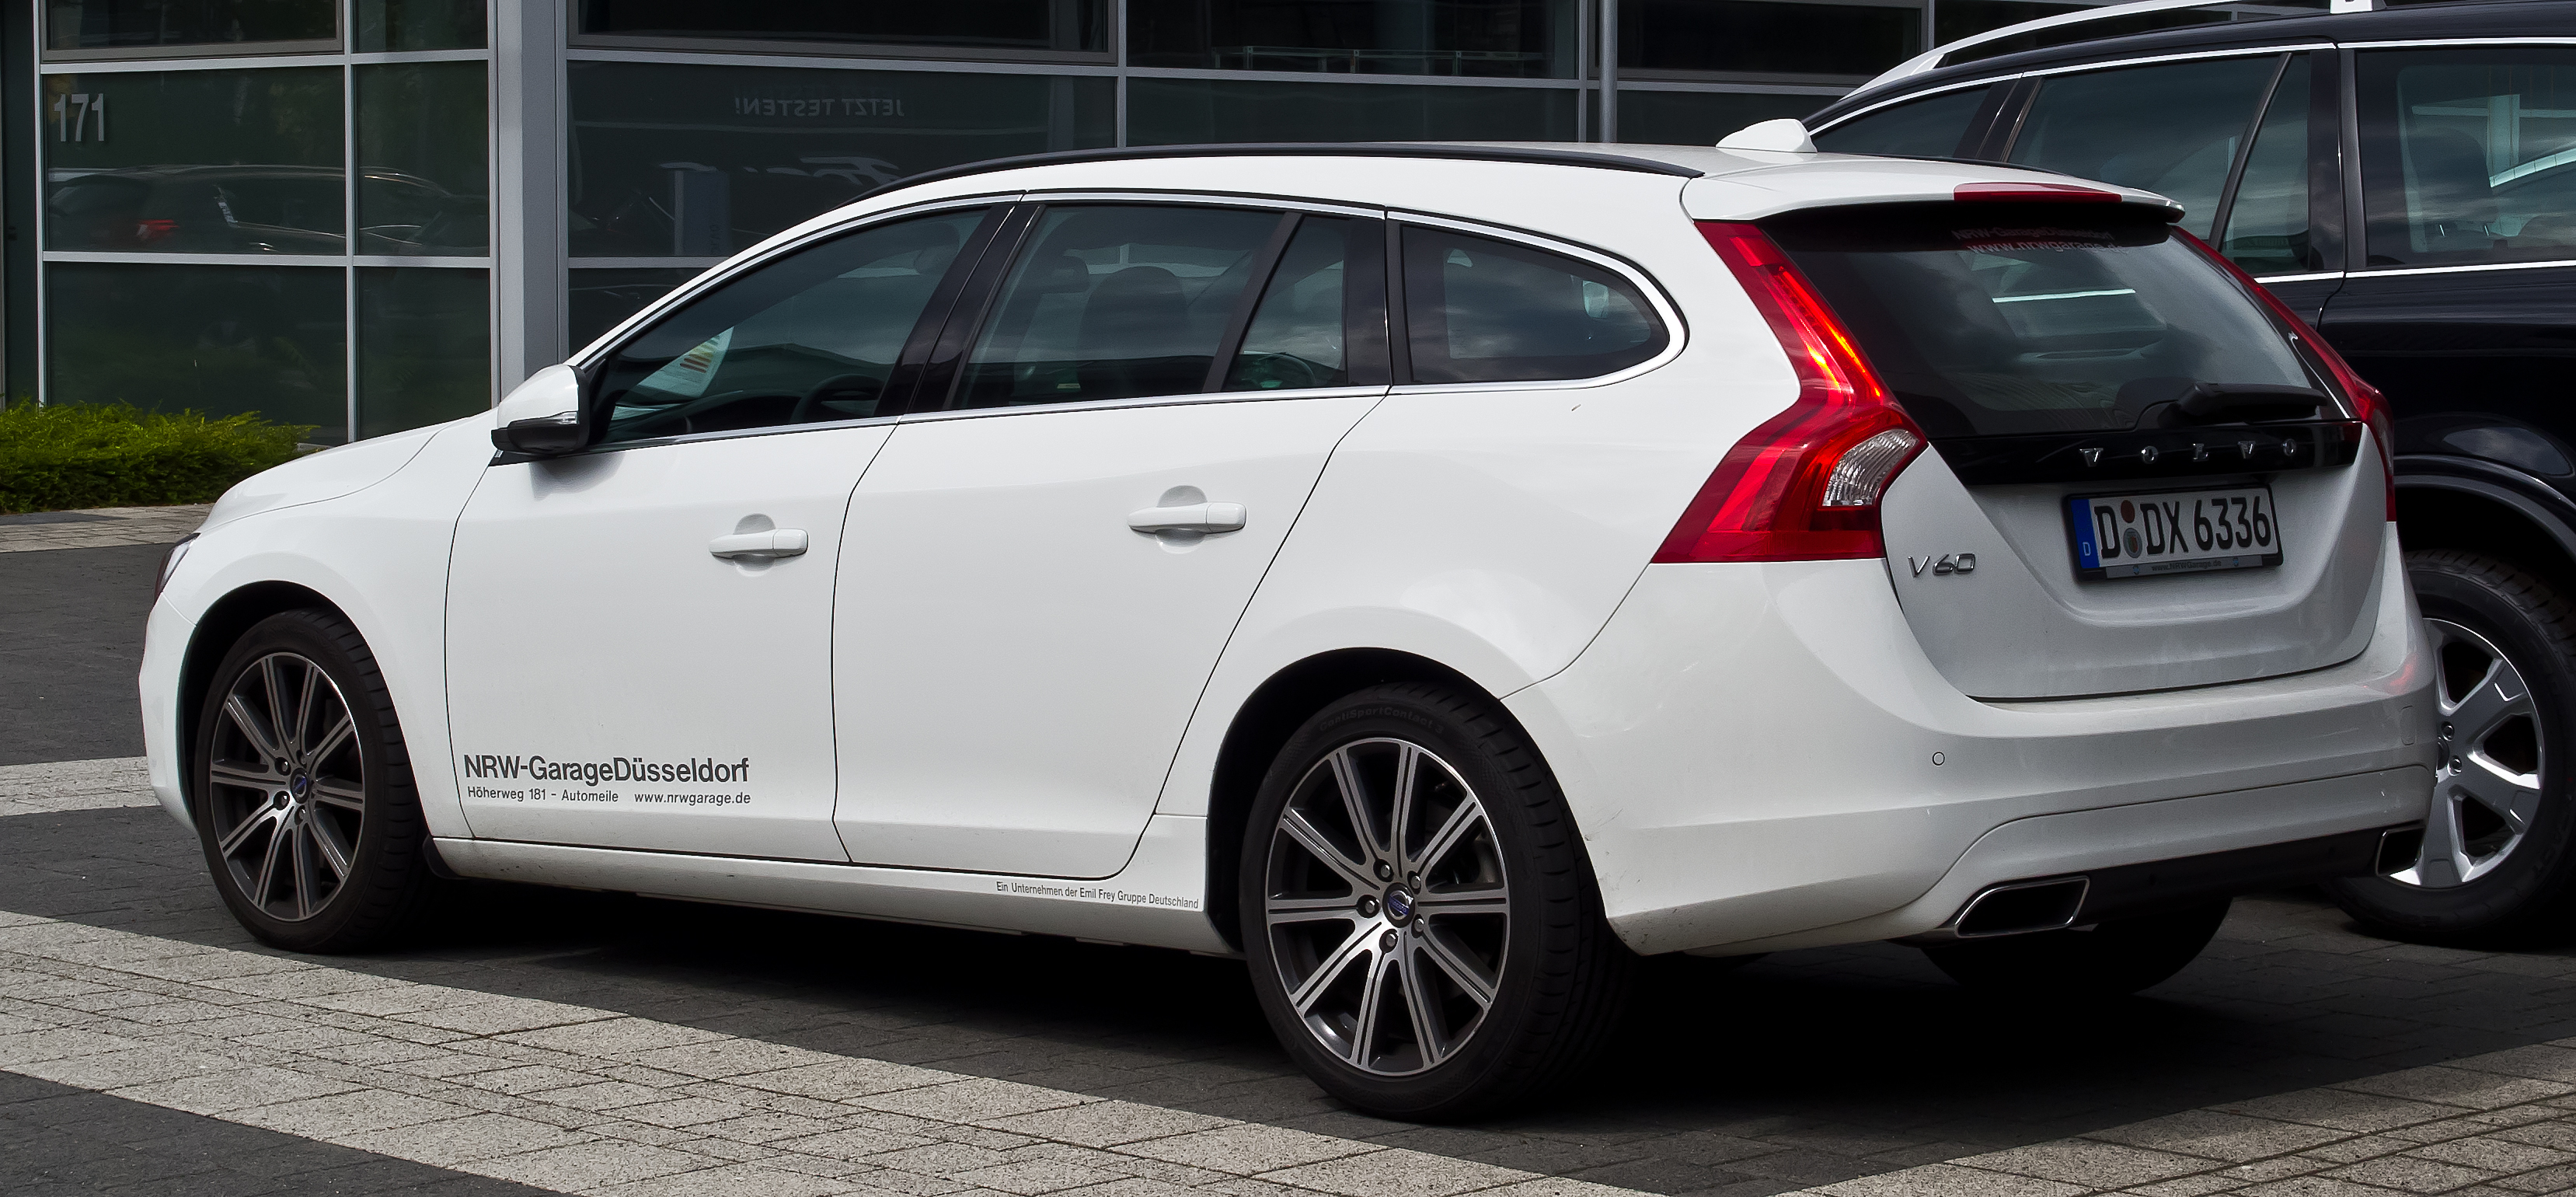 2013 volvo v60 f pictures information and specs. Black Bedroom Furniture Sets. Home Design Ideas